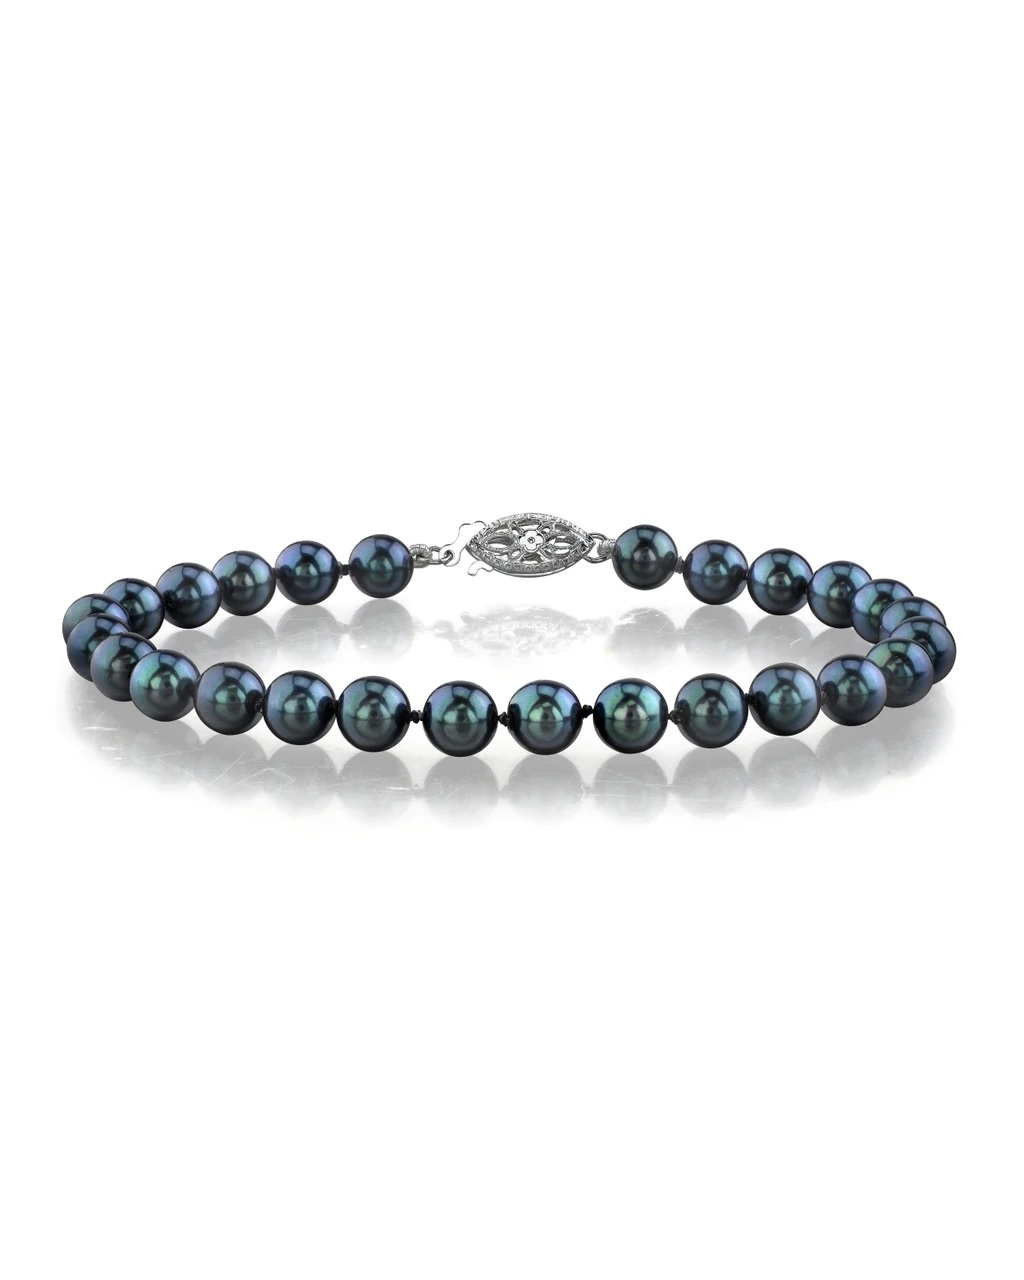 This elegant bracelet features 5.5-6.0mm Japanese Akoya pearls, handpicked for their luminous luster